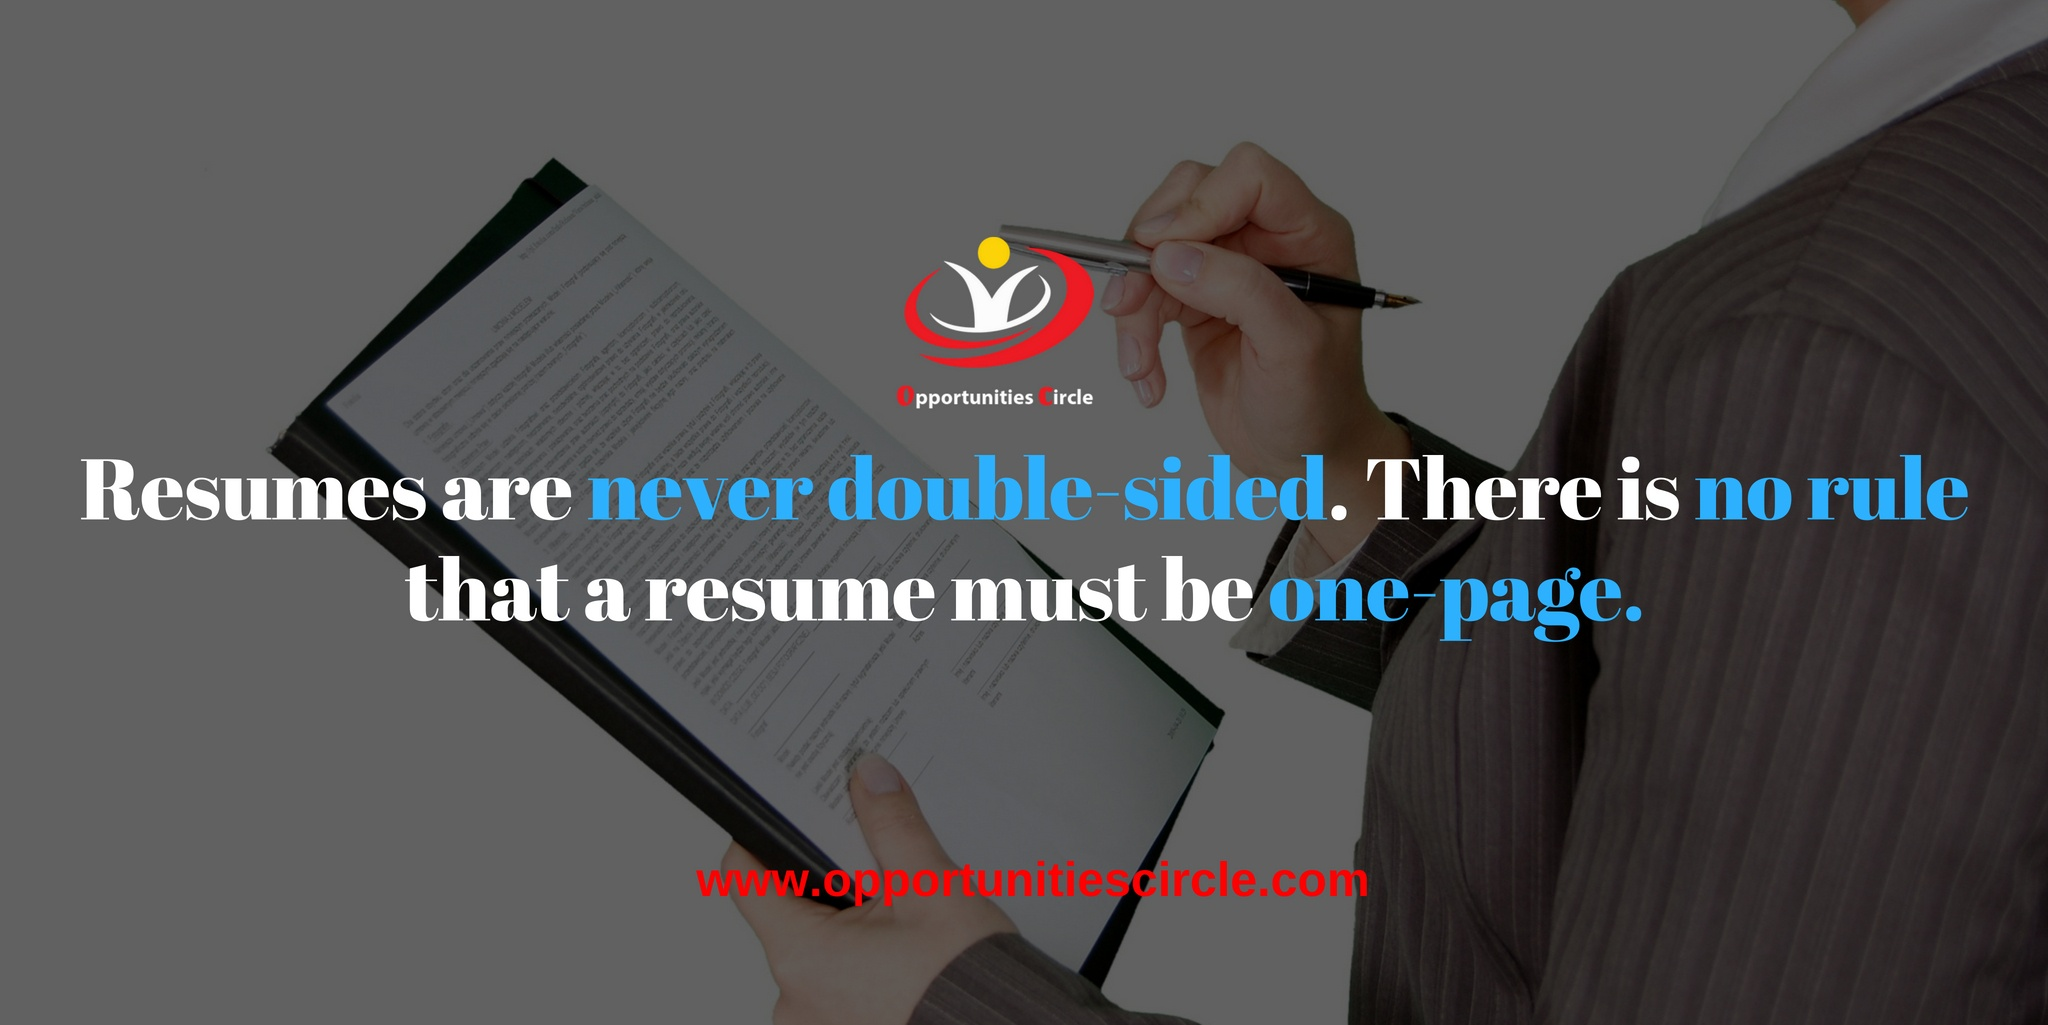 How long should a good resume be to secure a job? - Opportunities Circle